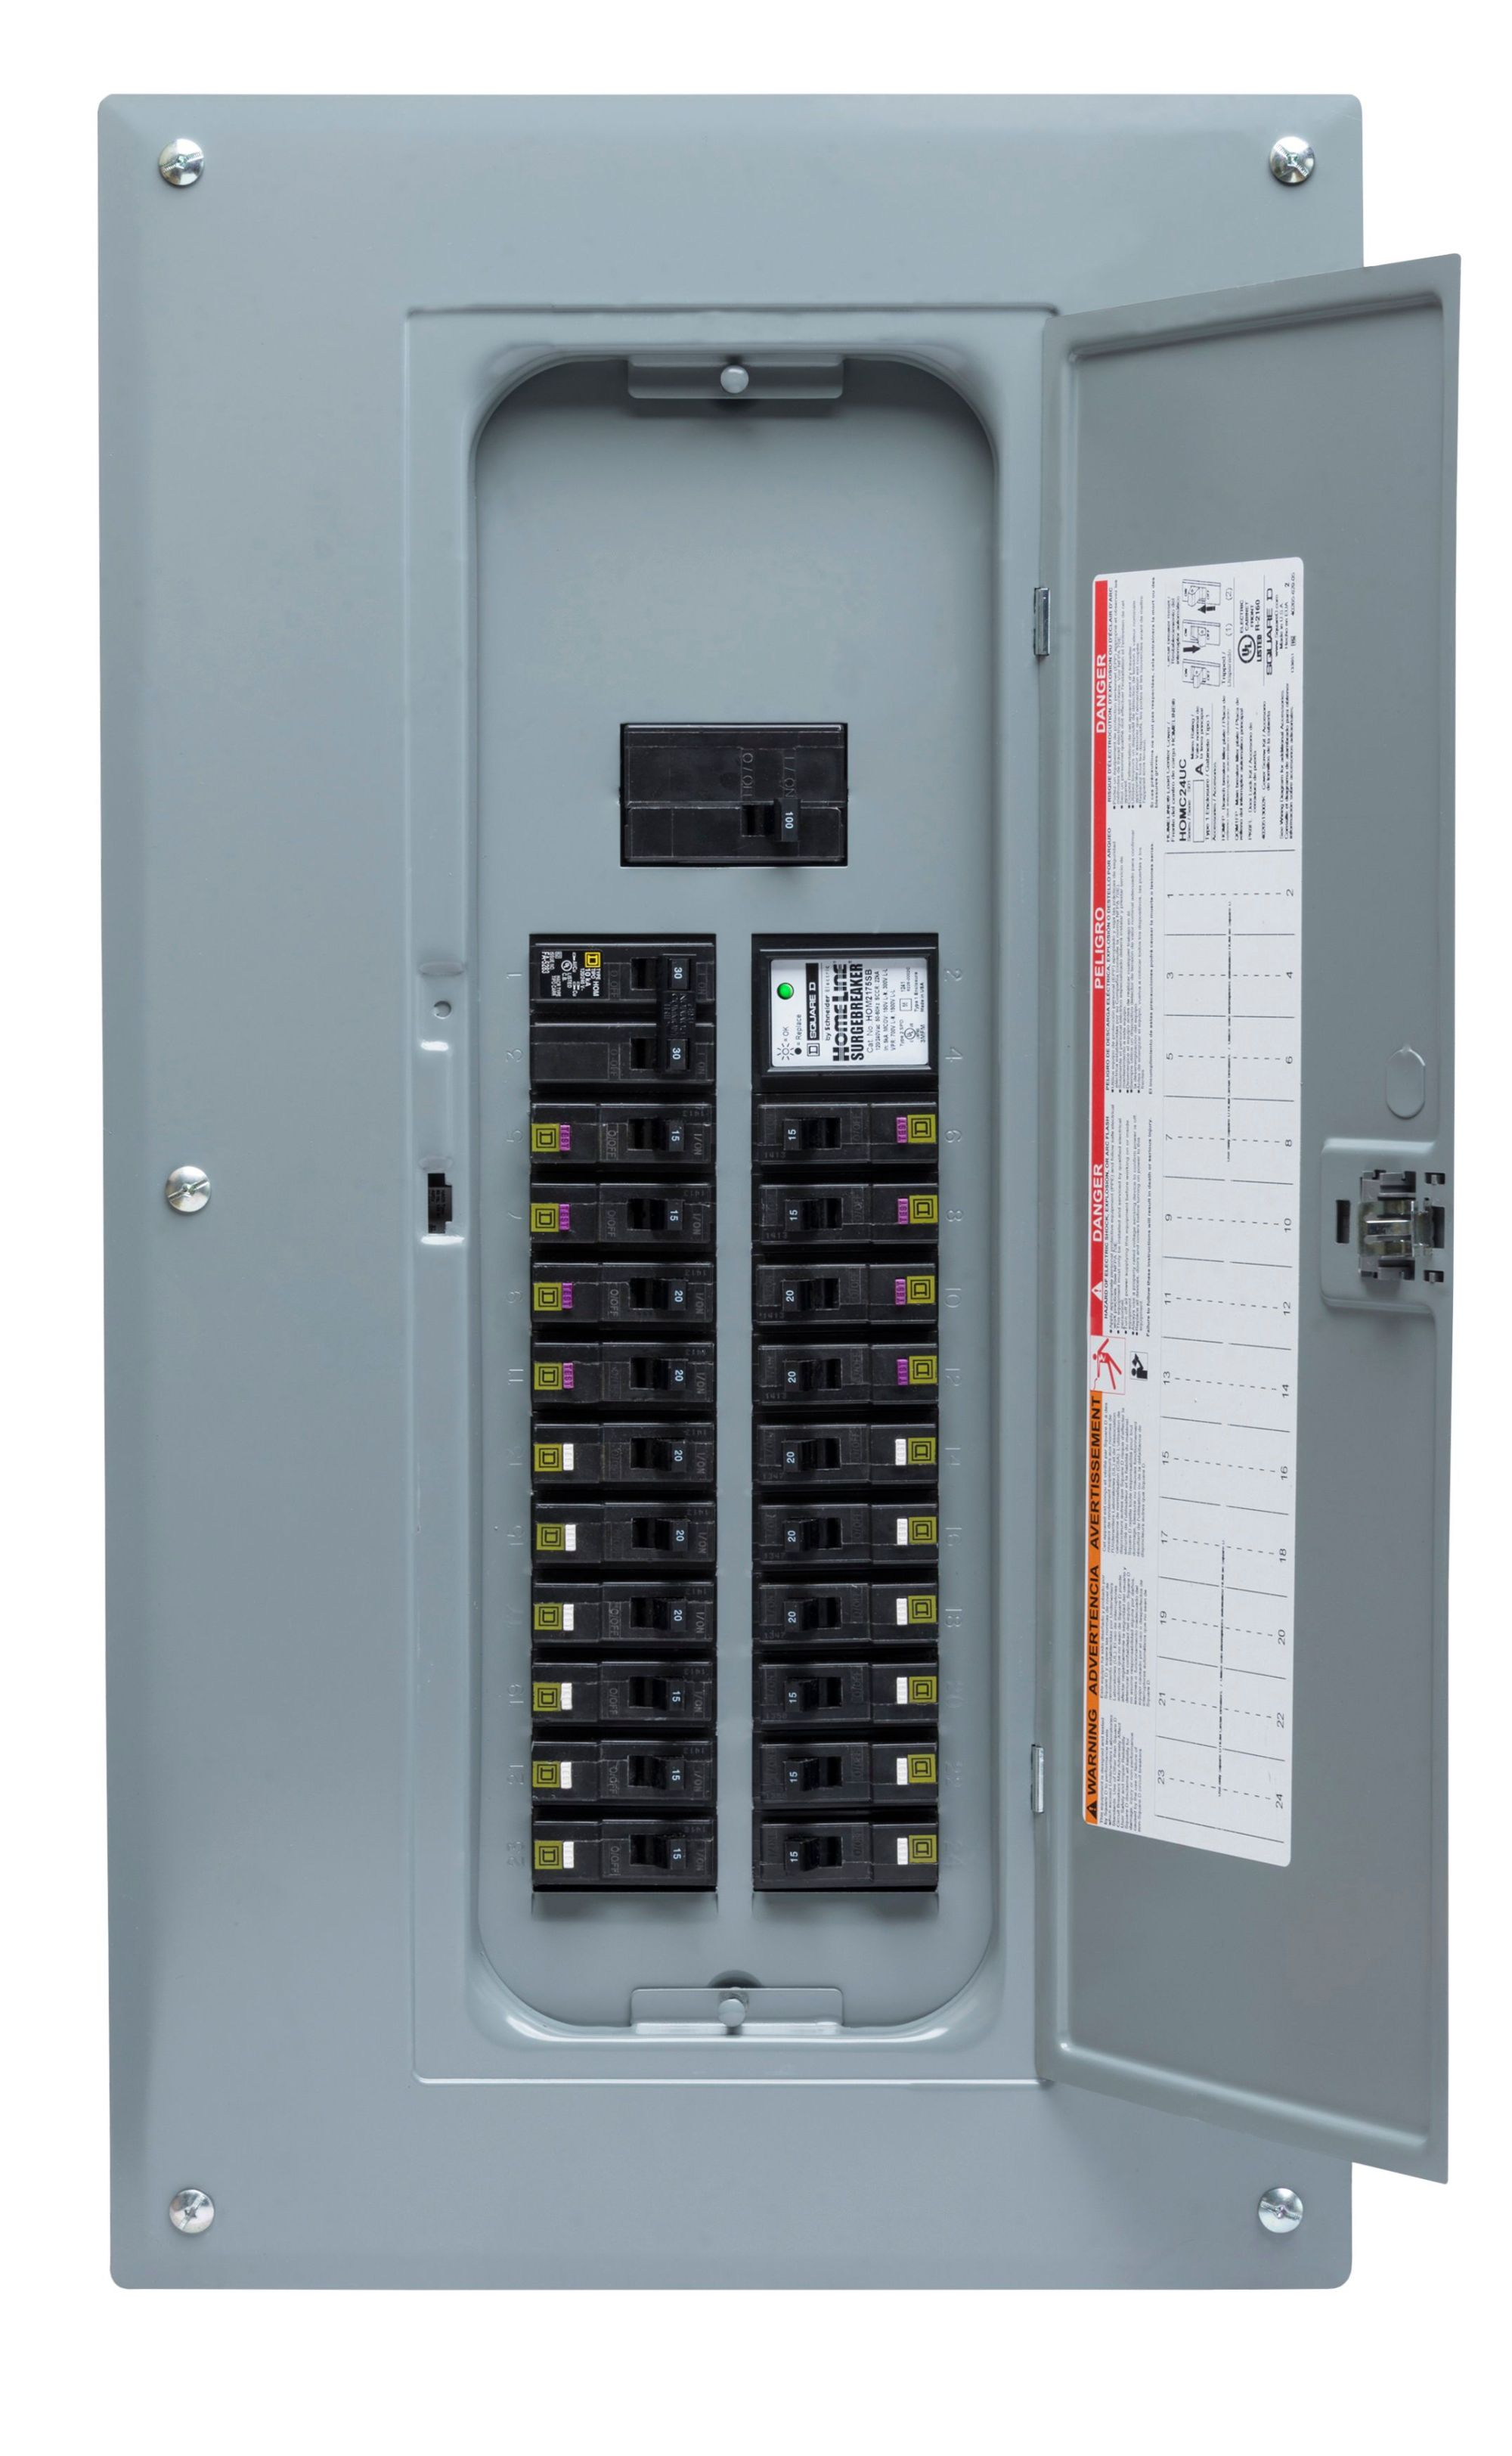 hight resolution of square d fuse box doors wiring diagram reviewsquare d fuse box doors wiring diagram perfomance square